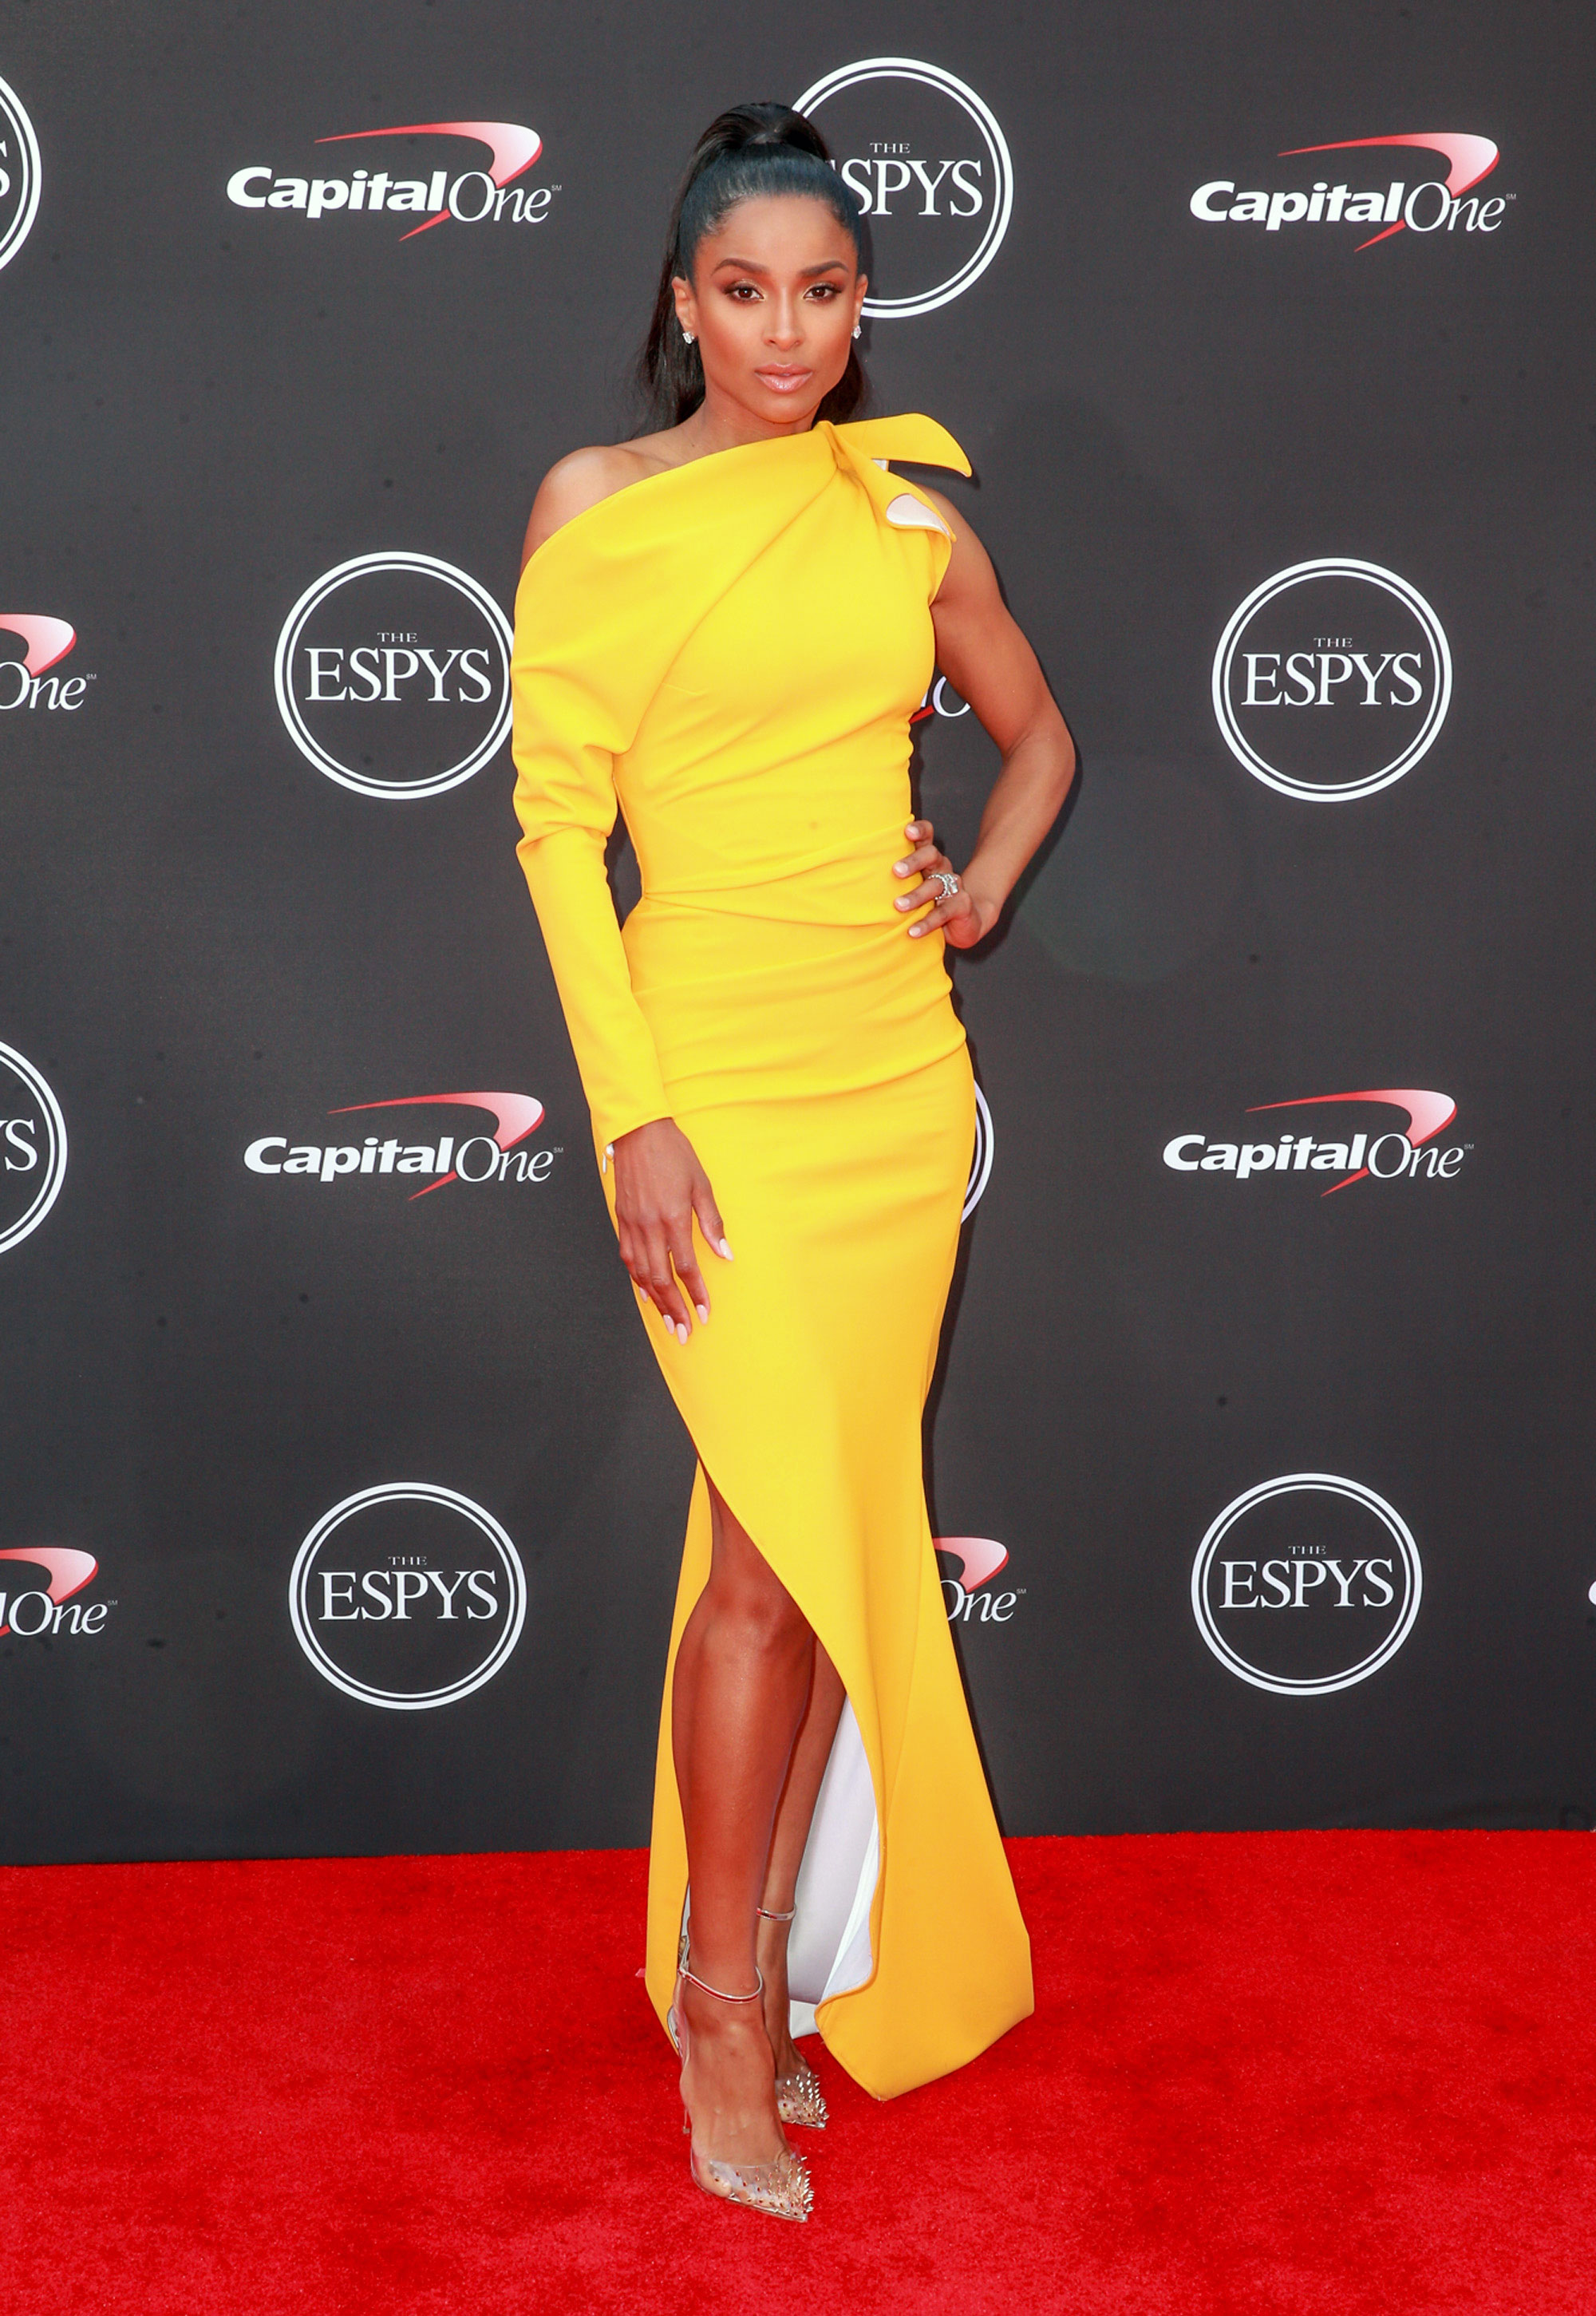 ciara-espys - LOS ANGELES, CA – JULY 18: Ciara attends the 2018 ESPYS at Microsoft Theater on July 18, 2018 in Los Angeles, California. (Photo by Rich Fury/WireImage)